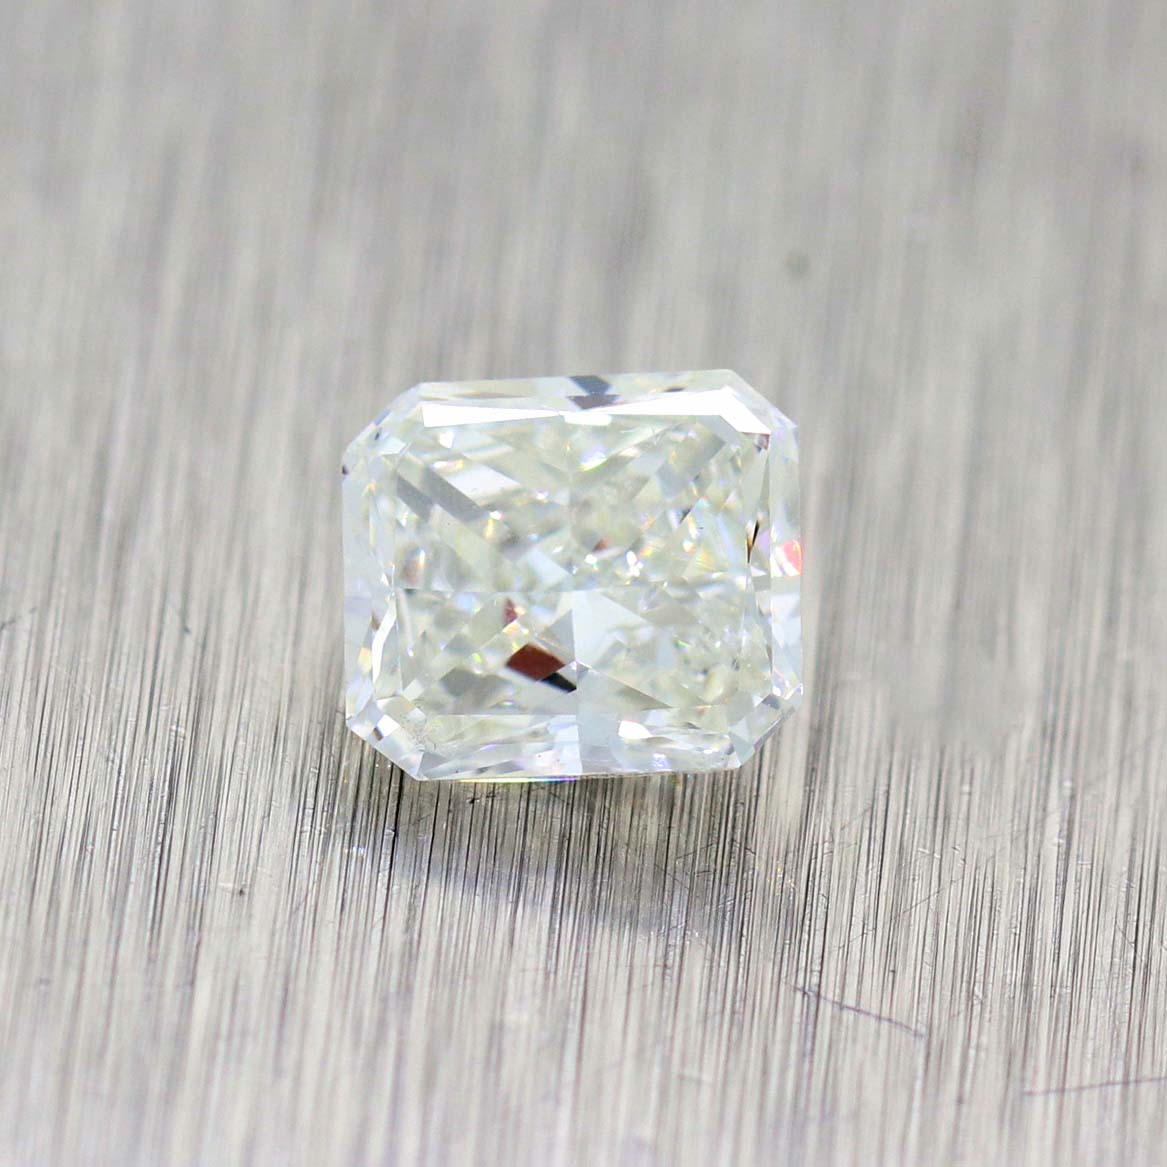 1.01ctw Radiant Cut H Color SI1 Clarity GIA Loose Diamond